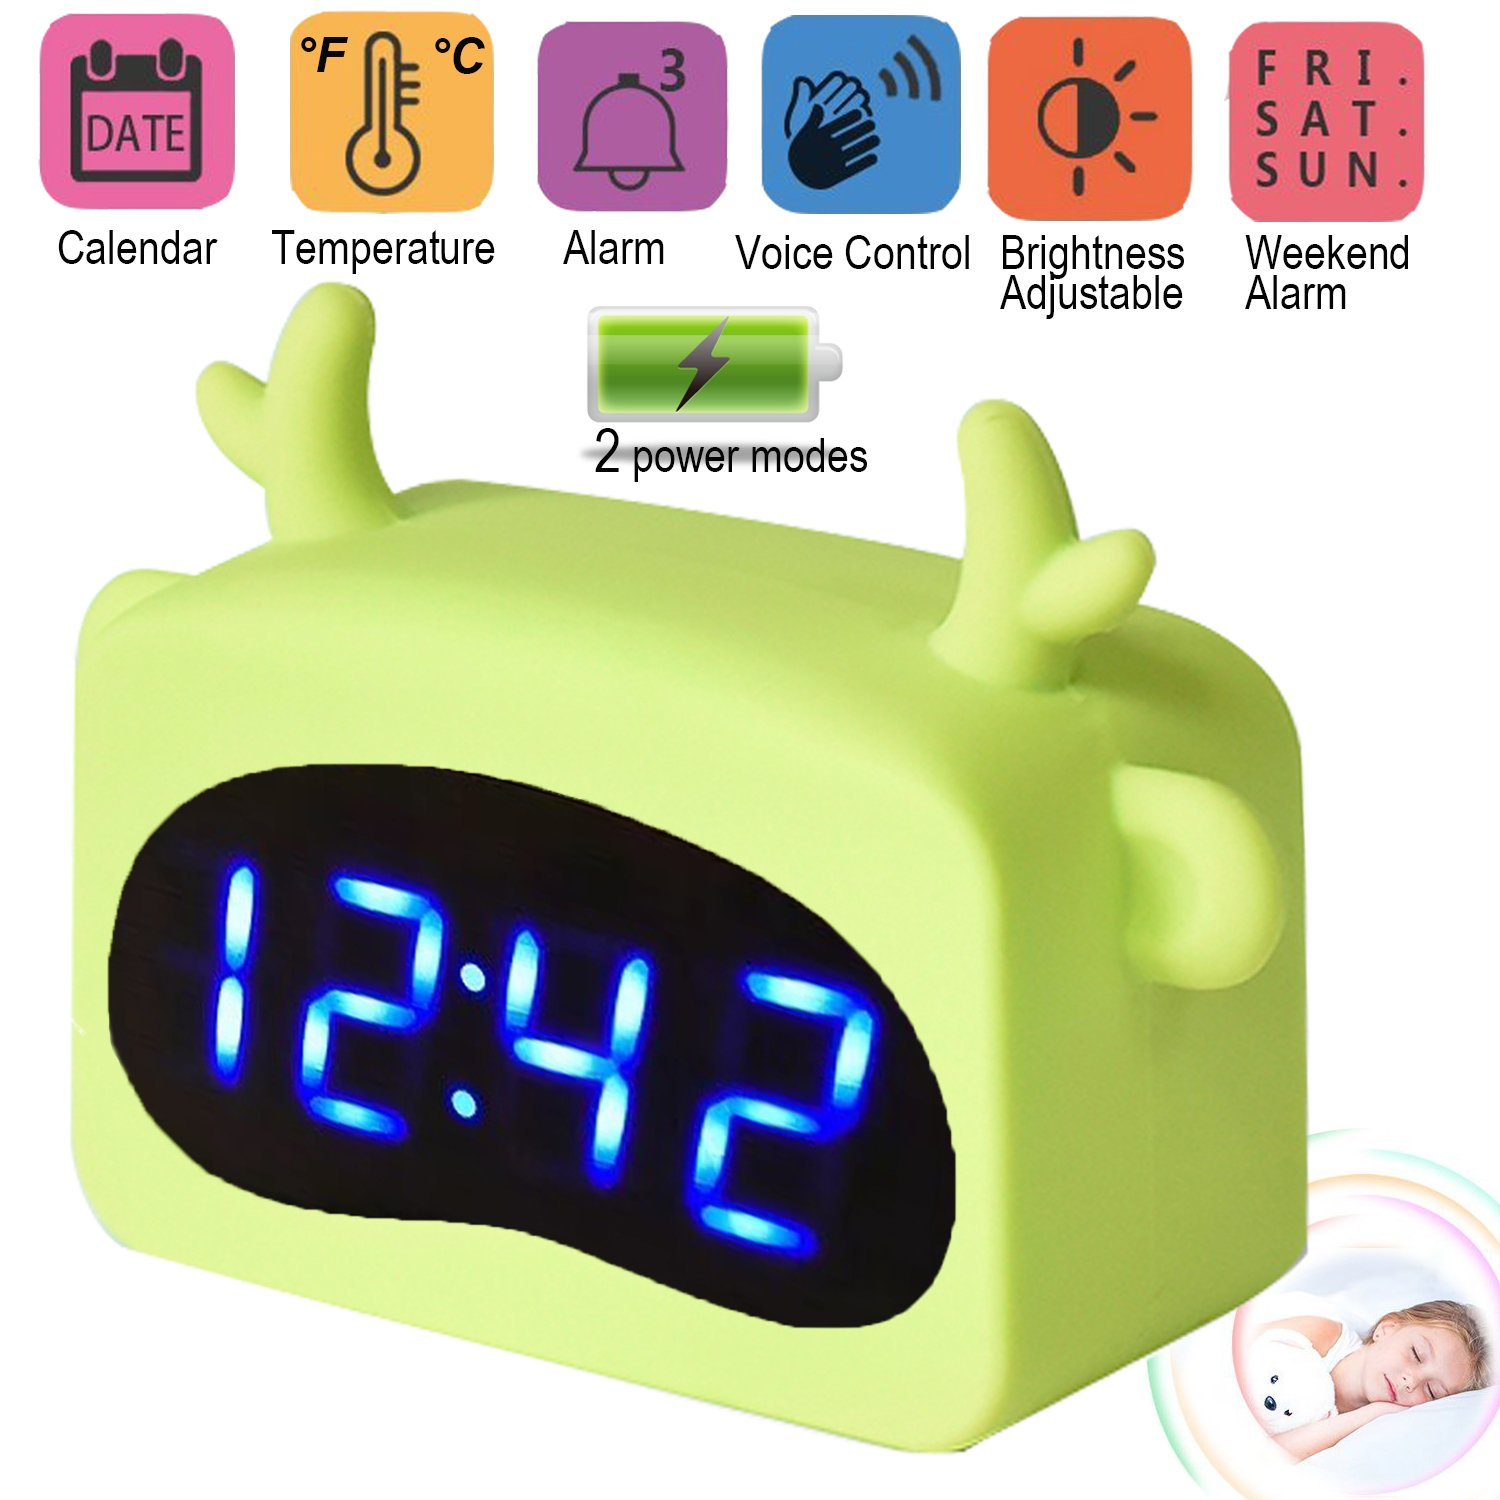 Kids Digital Alarm Clock LED USB Desk Clock with Voice Control 3 Alarm 4 Level Brightness for Heavy Sleeper Large Display Temperature Date Time Women Men Teen Toddler Bedroom Kitchen Back to School